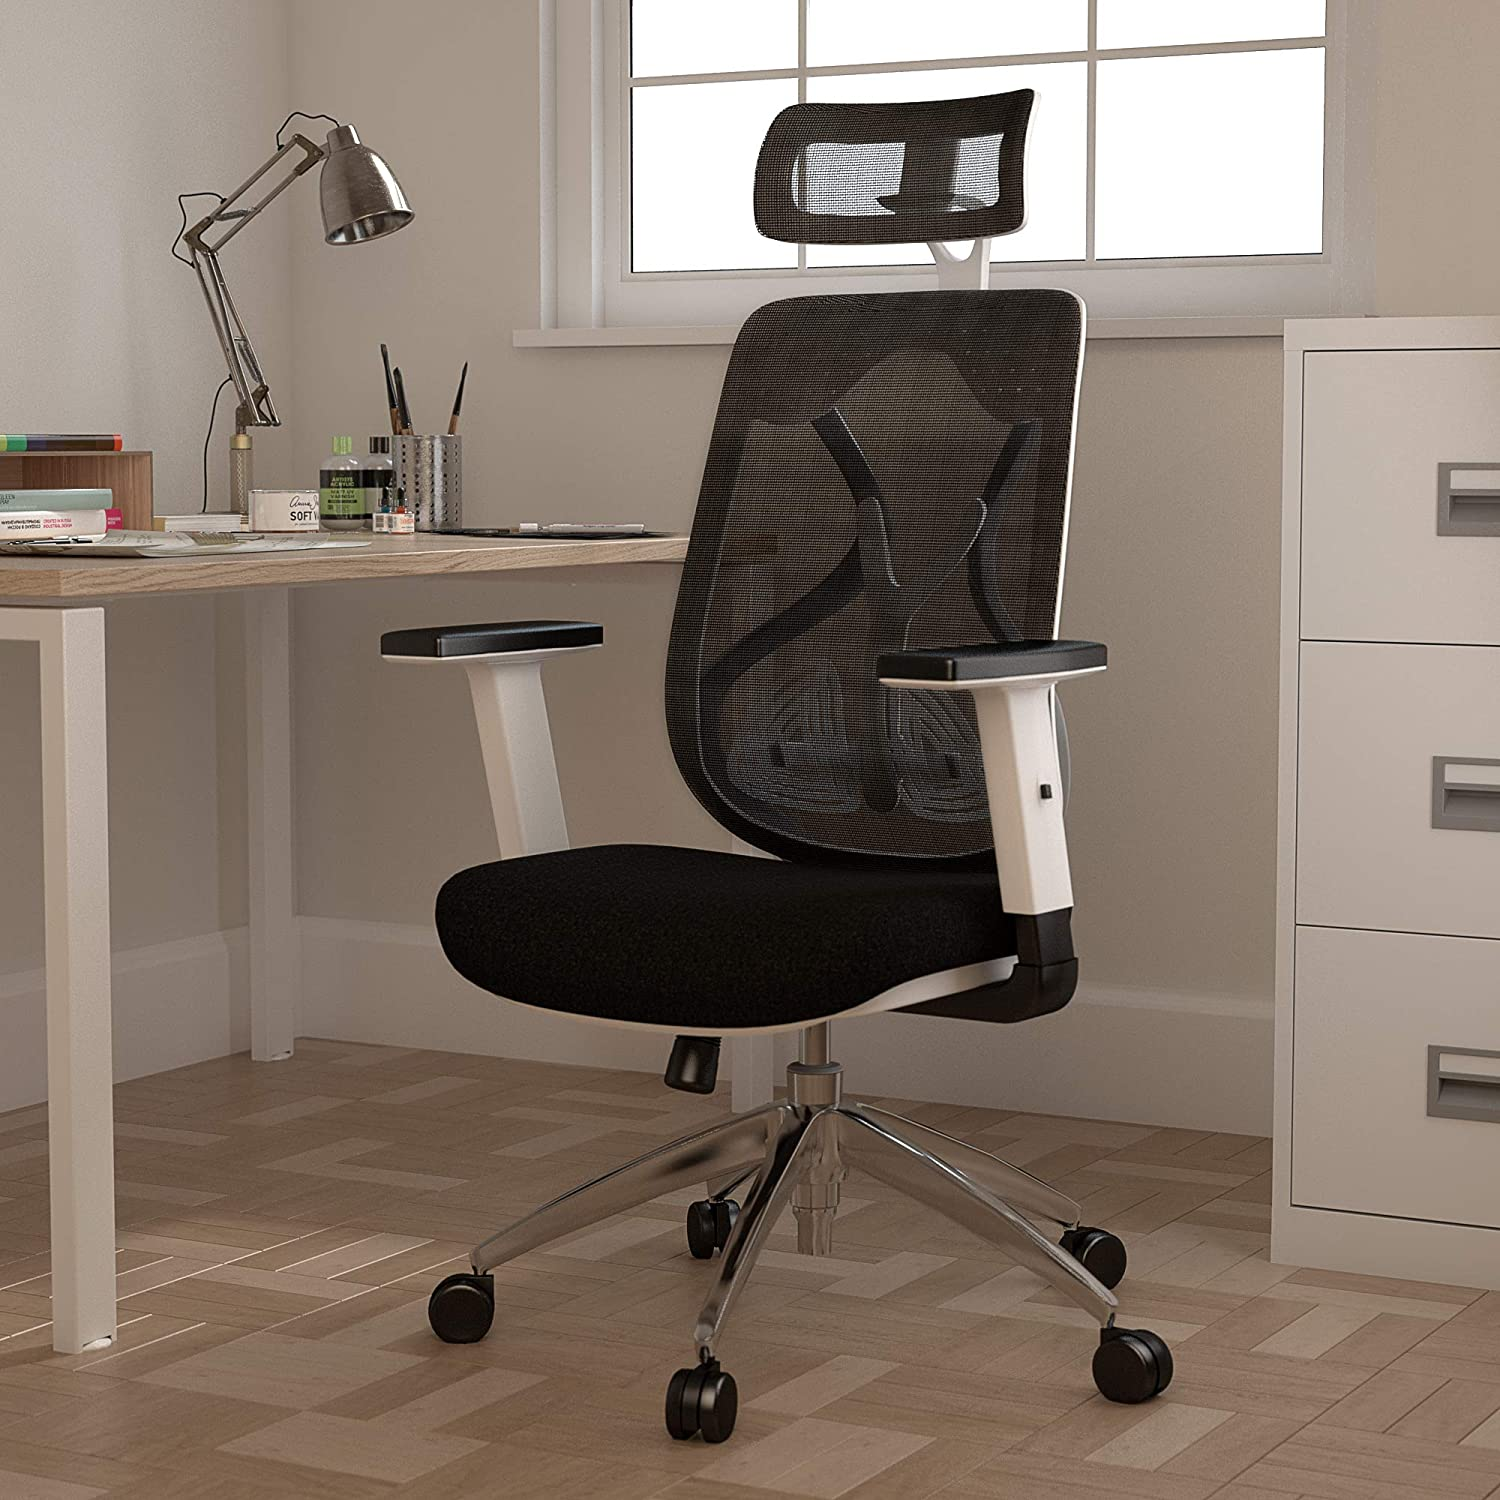 Office Hippo Ergonomic Chair Office, White Office Chair with Back Support, Desk Chair for Home Office Computer Chair, Mesh, Swivel